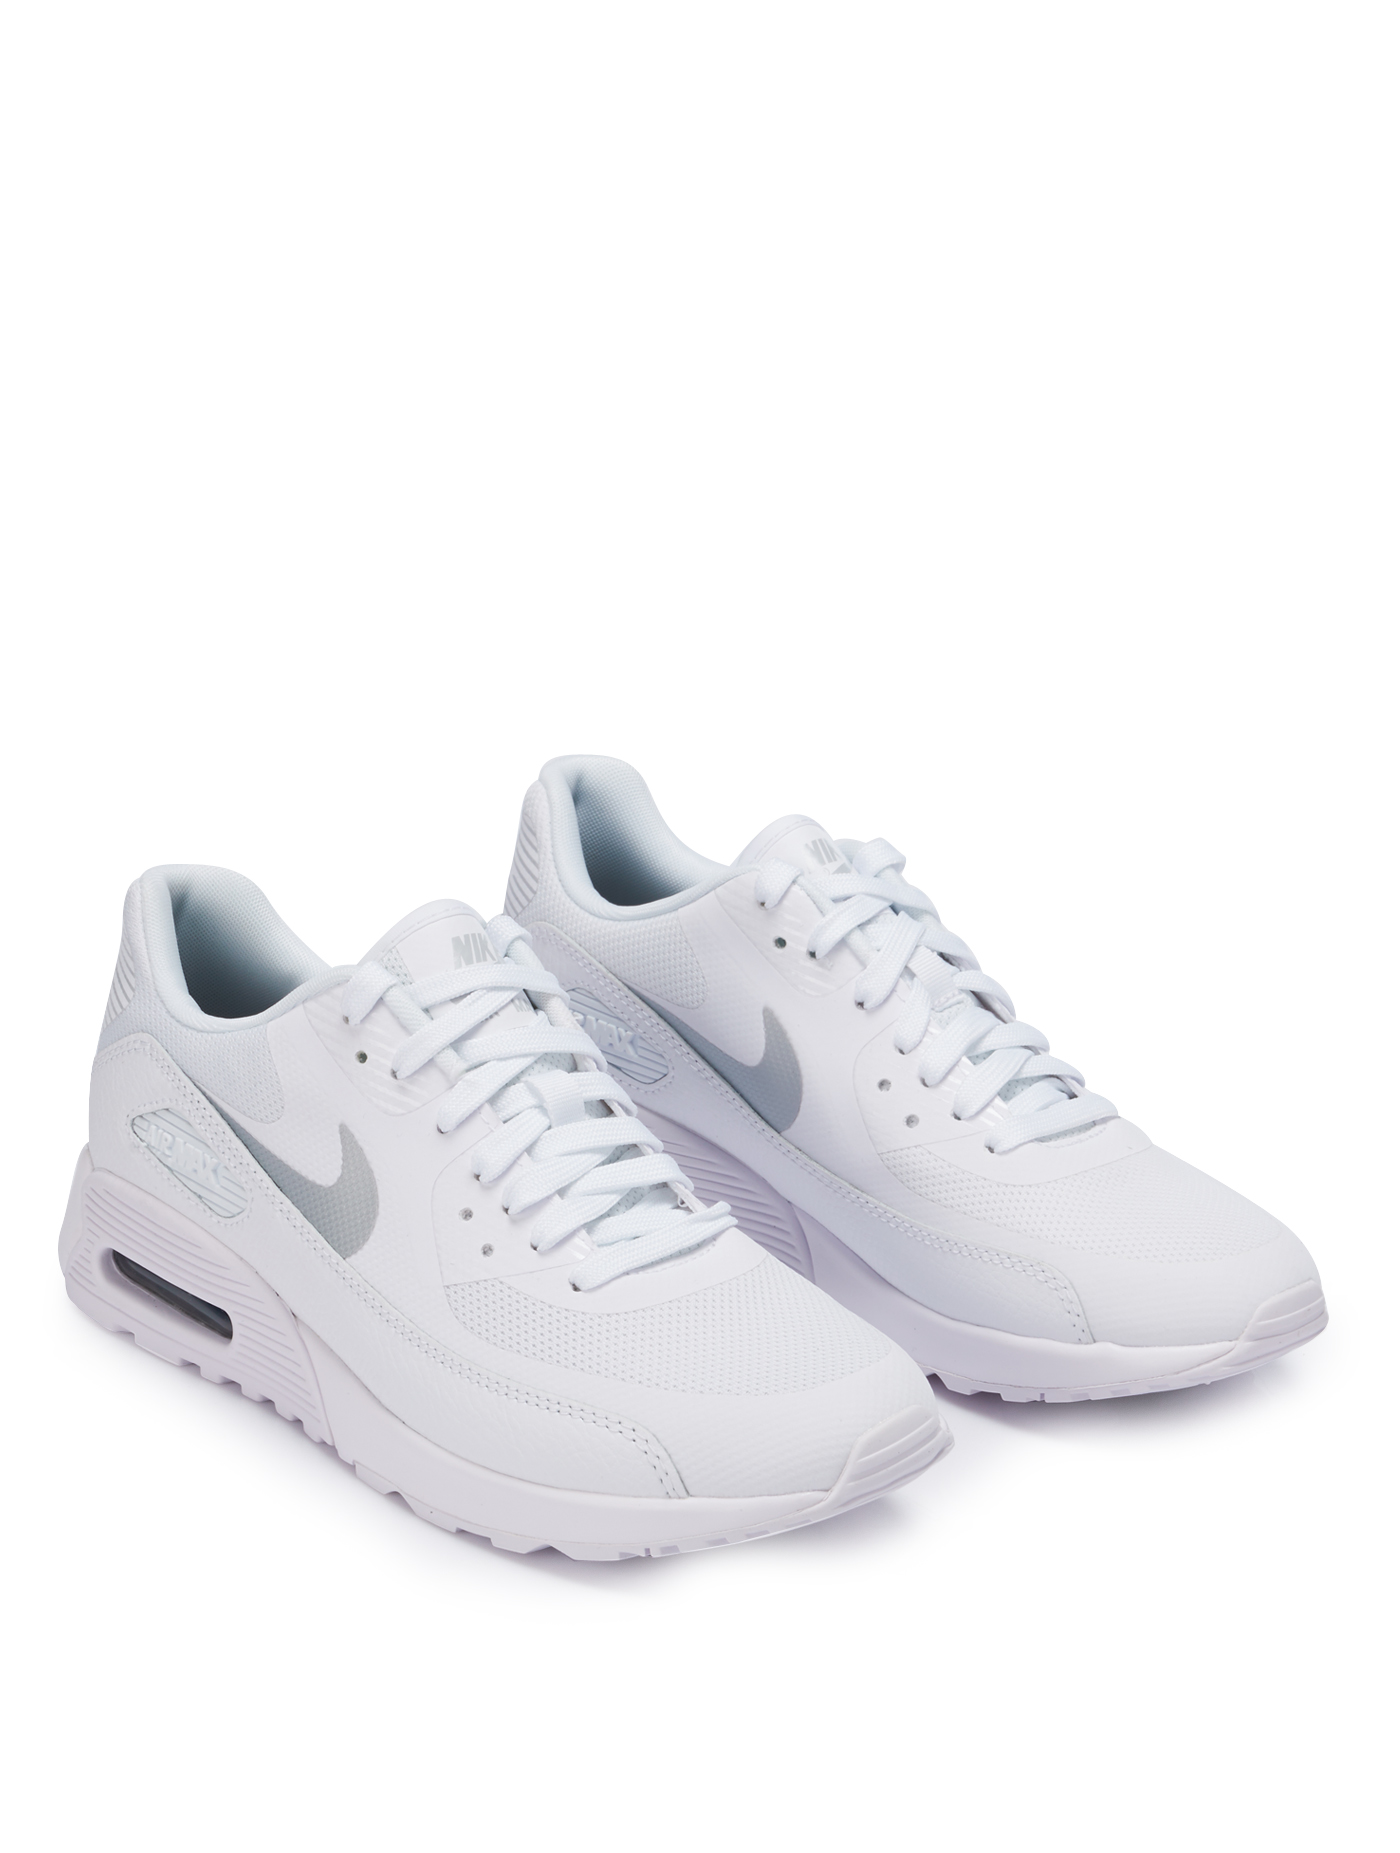 NIKE Women's Sport Shoes Air Max 90 Ultra 2.0 Size 6.5